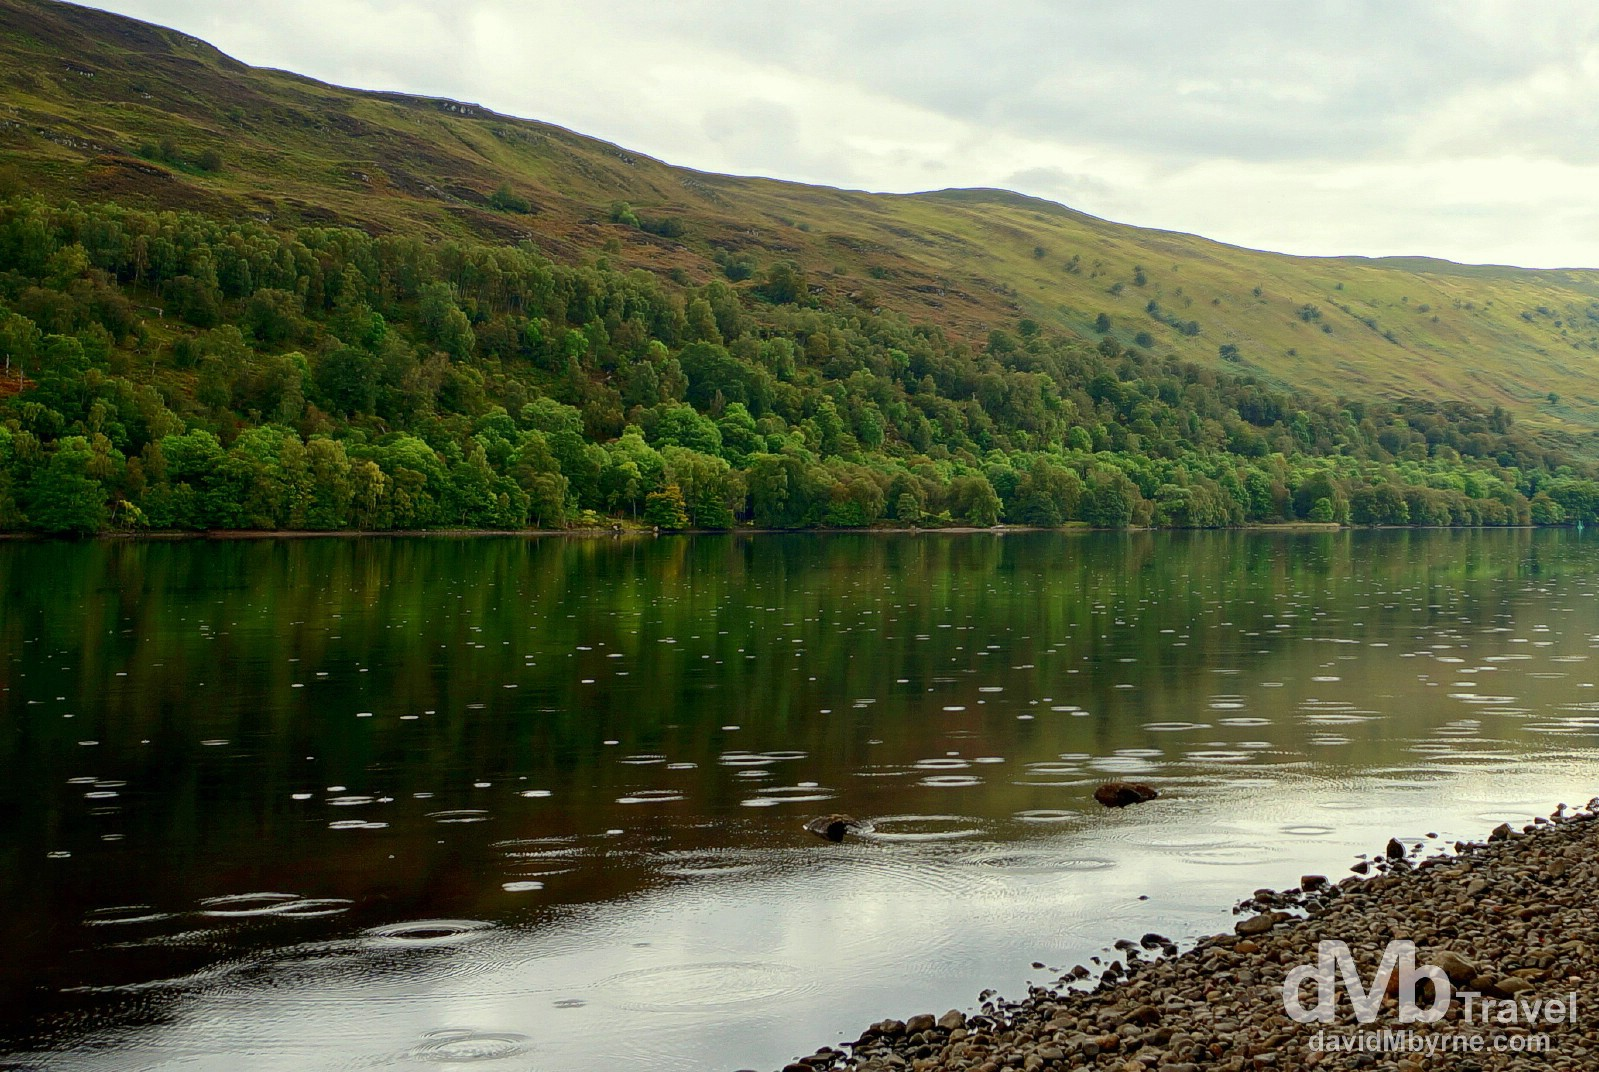 Light rain disrupts the mirror-like reflections on Loch Oich in Highland, Scotland. September 16, 2014.